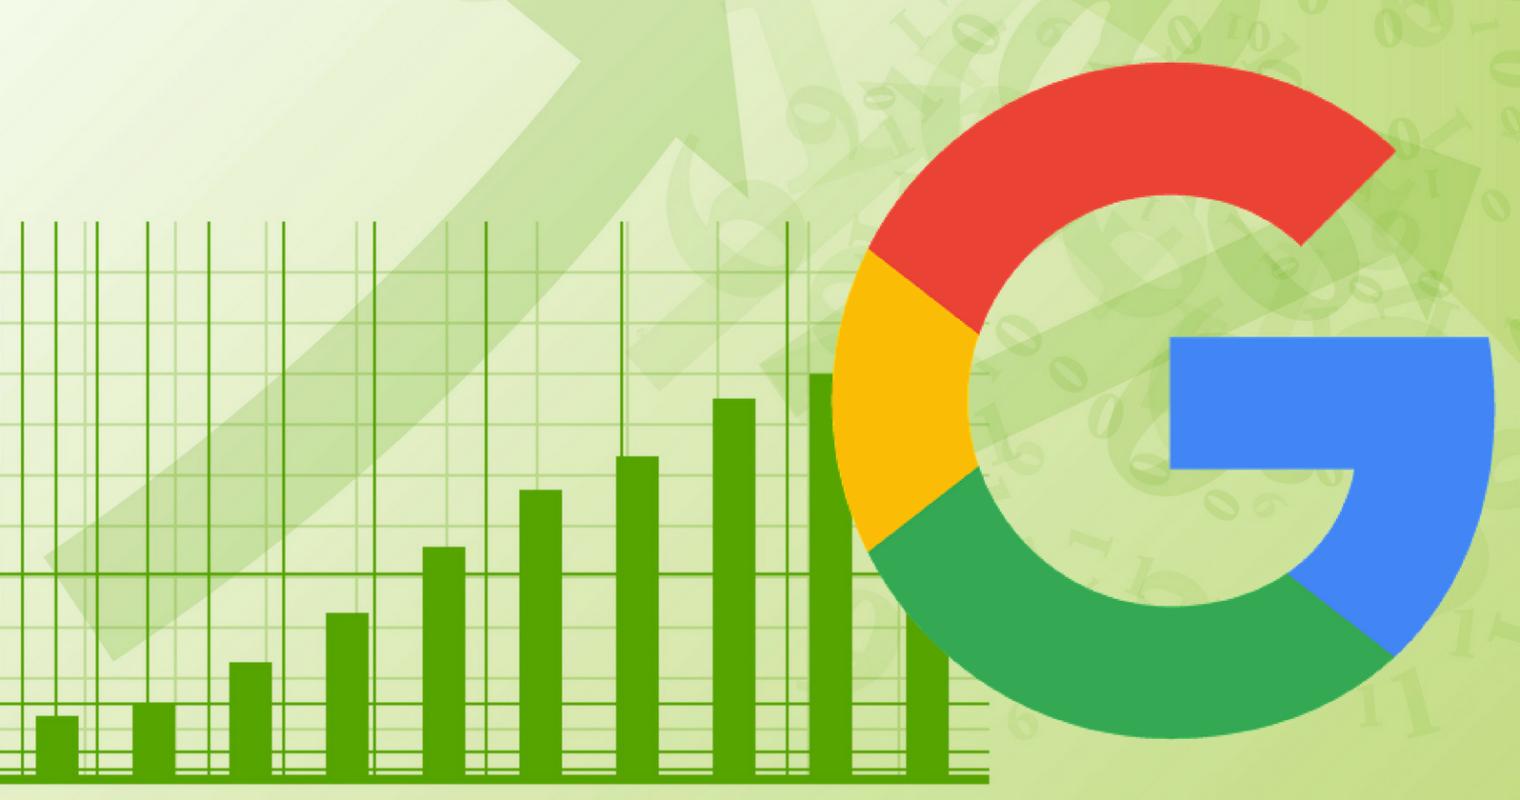 Google's Share of Search Ad Market Projected to Grow to 80% by 2019